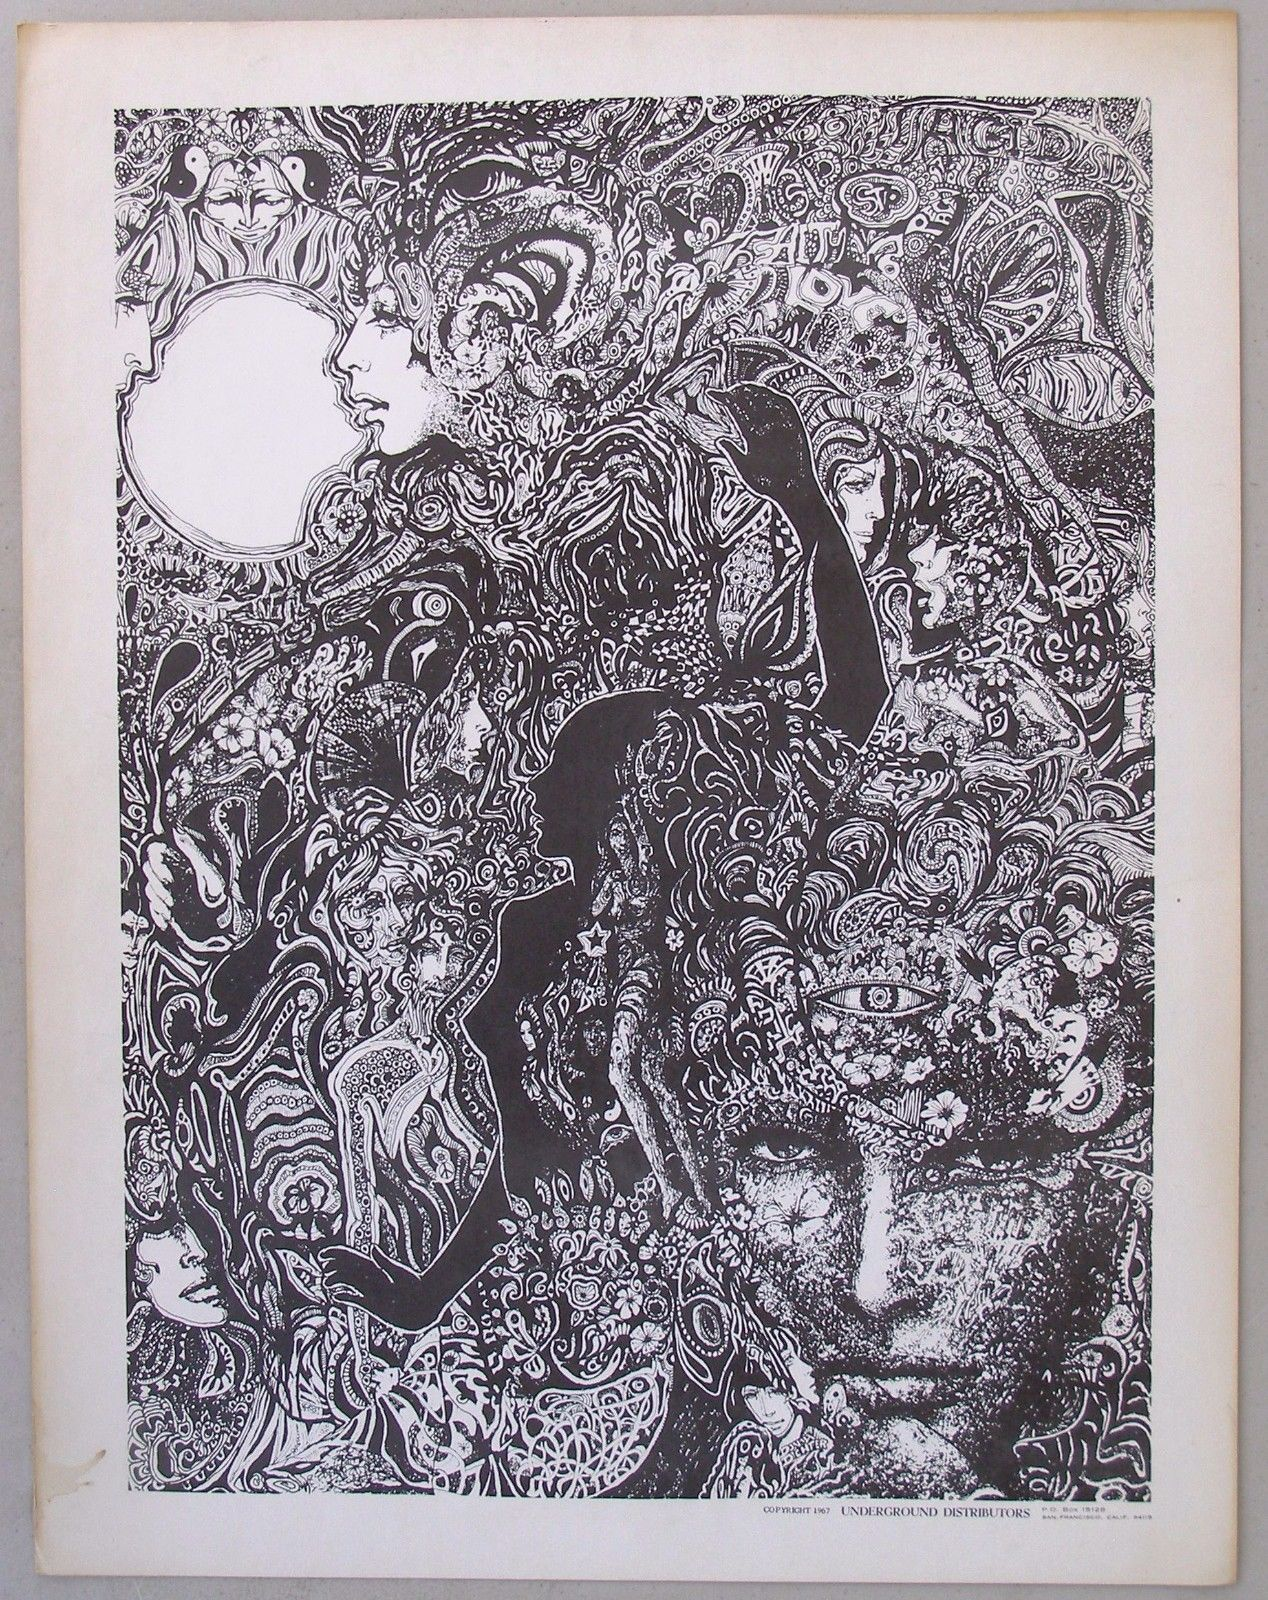 Black and White Psychedelic Poster, Underground